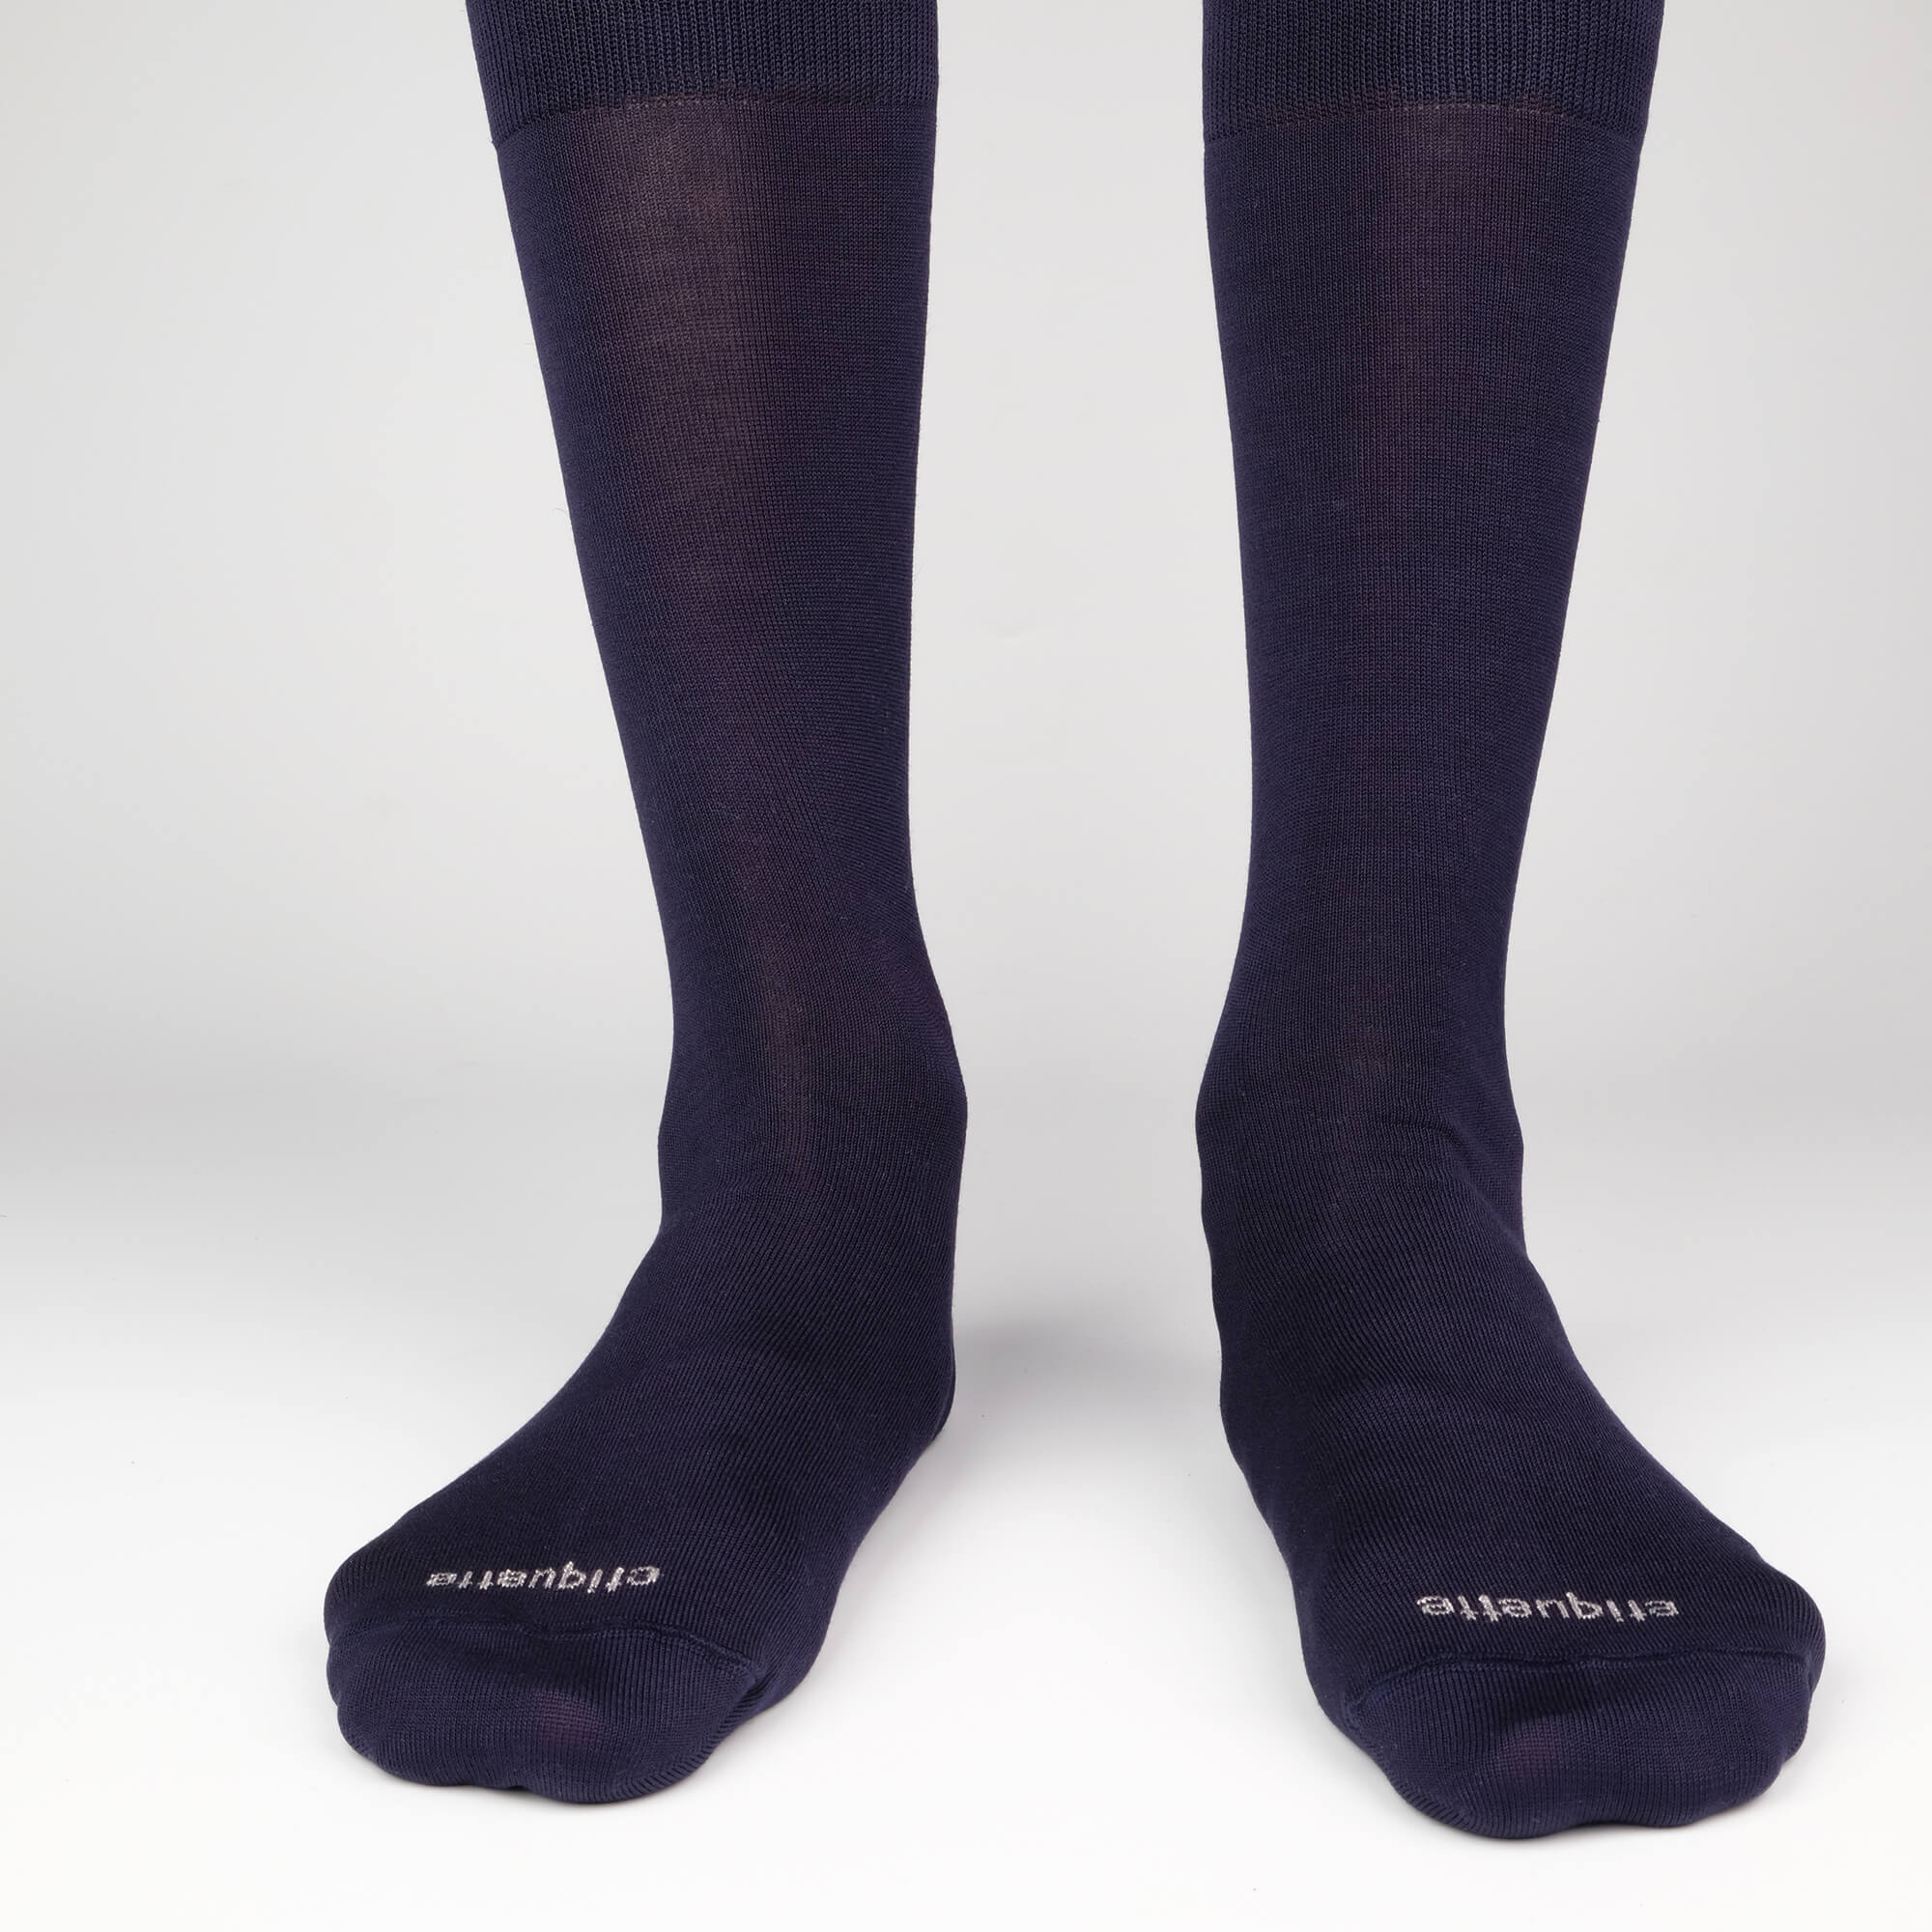 Basic Luxuxuries - Navy - Mens Socks | Etiquette Clothiers Global Official